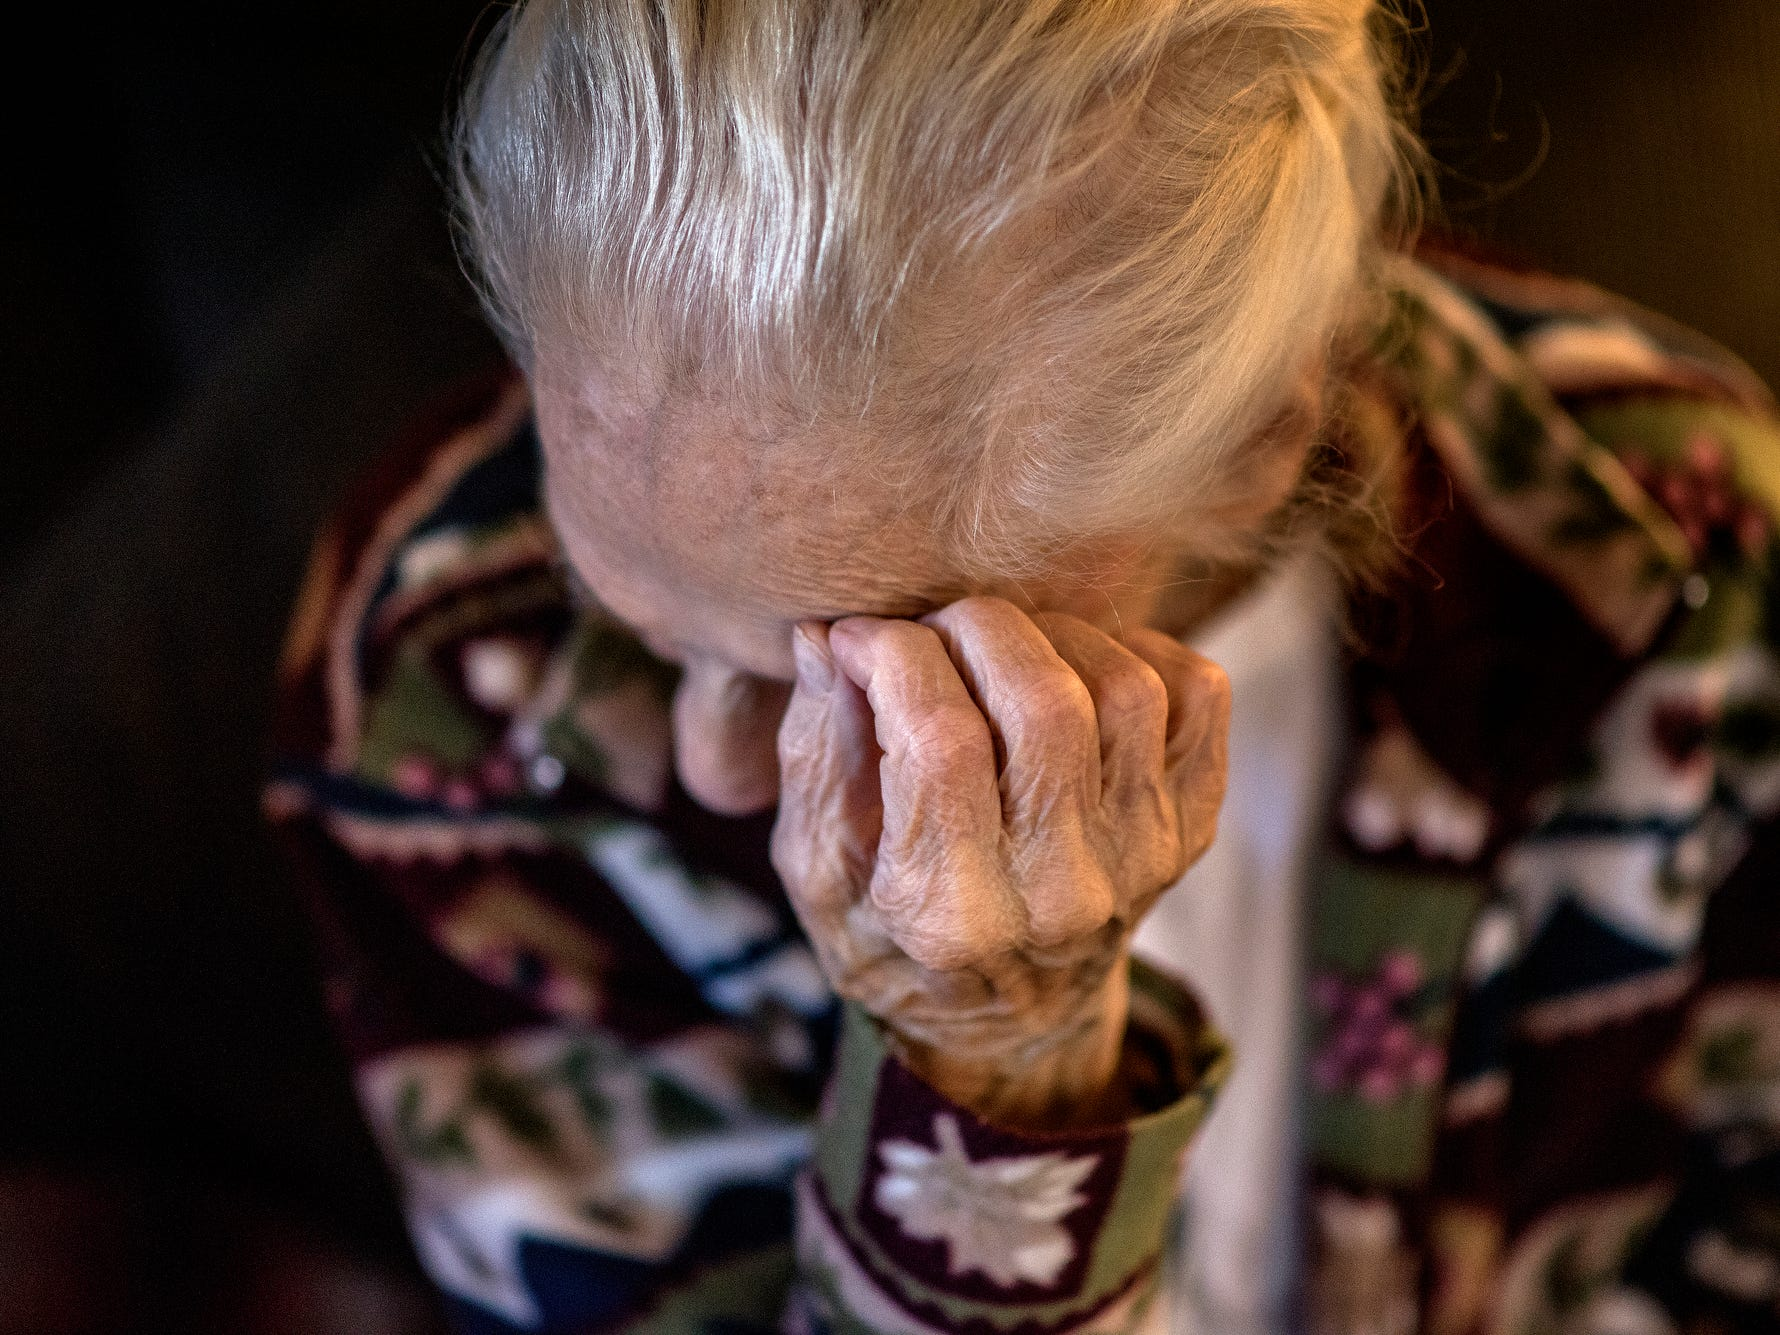 A frustrated Lois Faggion holds her hand to her head as she talks about her rat invasion on Tuesday, Sept. 25, 2018, at her home in Lansing. She says she needs help getting the rodents removed from her home. The house has not been maintained as well as it once was since her husband Bob died 20 years ago.